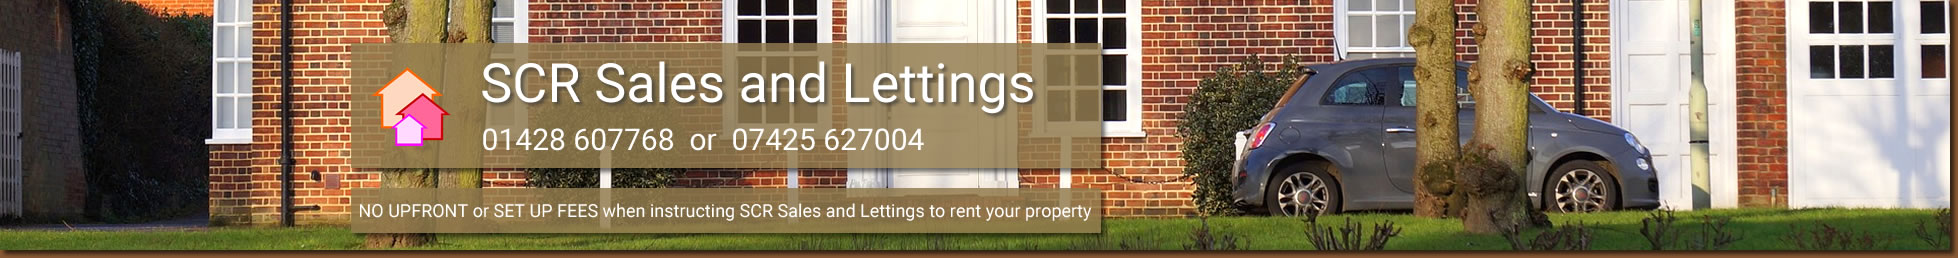 SCR Sales and Lettings is an established independent sales and lettings agent offering sales lettings and property management in Hampshire Surrey and all local villages including Guildford Farnham Liphook Petersfield Bordon Headley and Haslemere